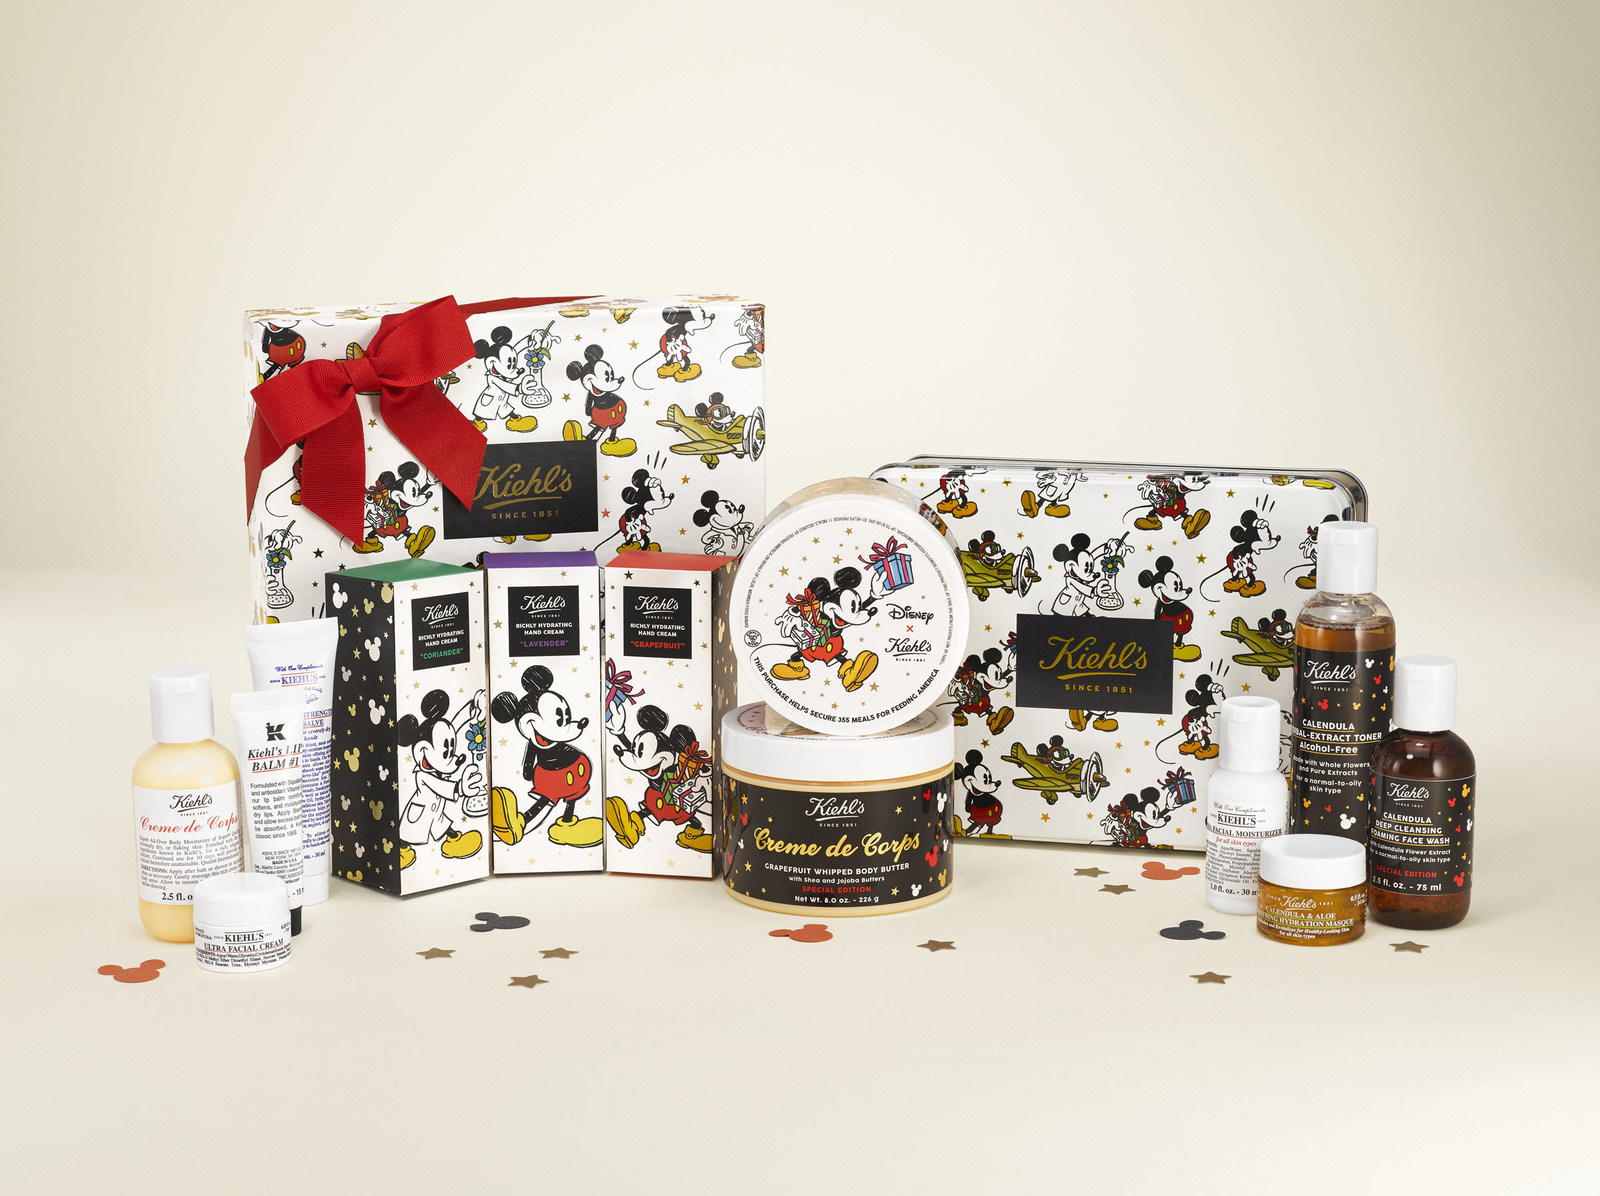 Select items from the Disney x Kiehl's collection will make up Kiehl's 9th Annual Limited Edition Charitable Holiday